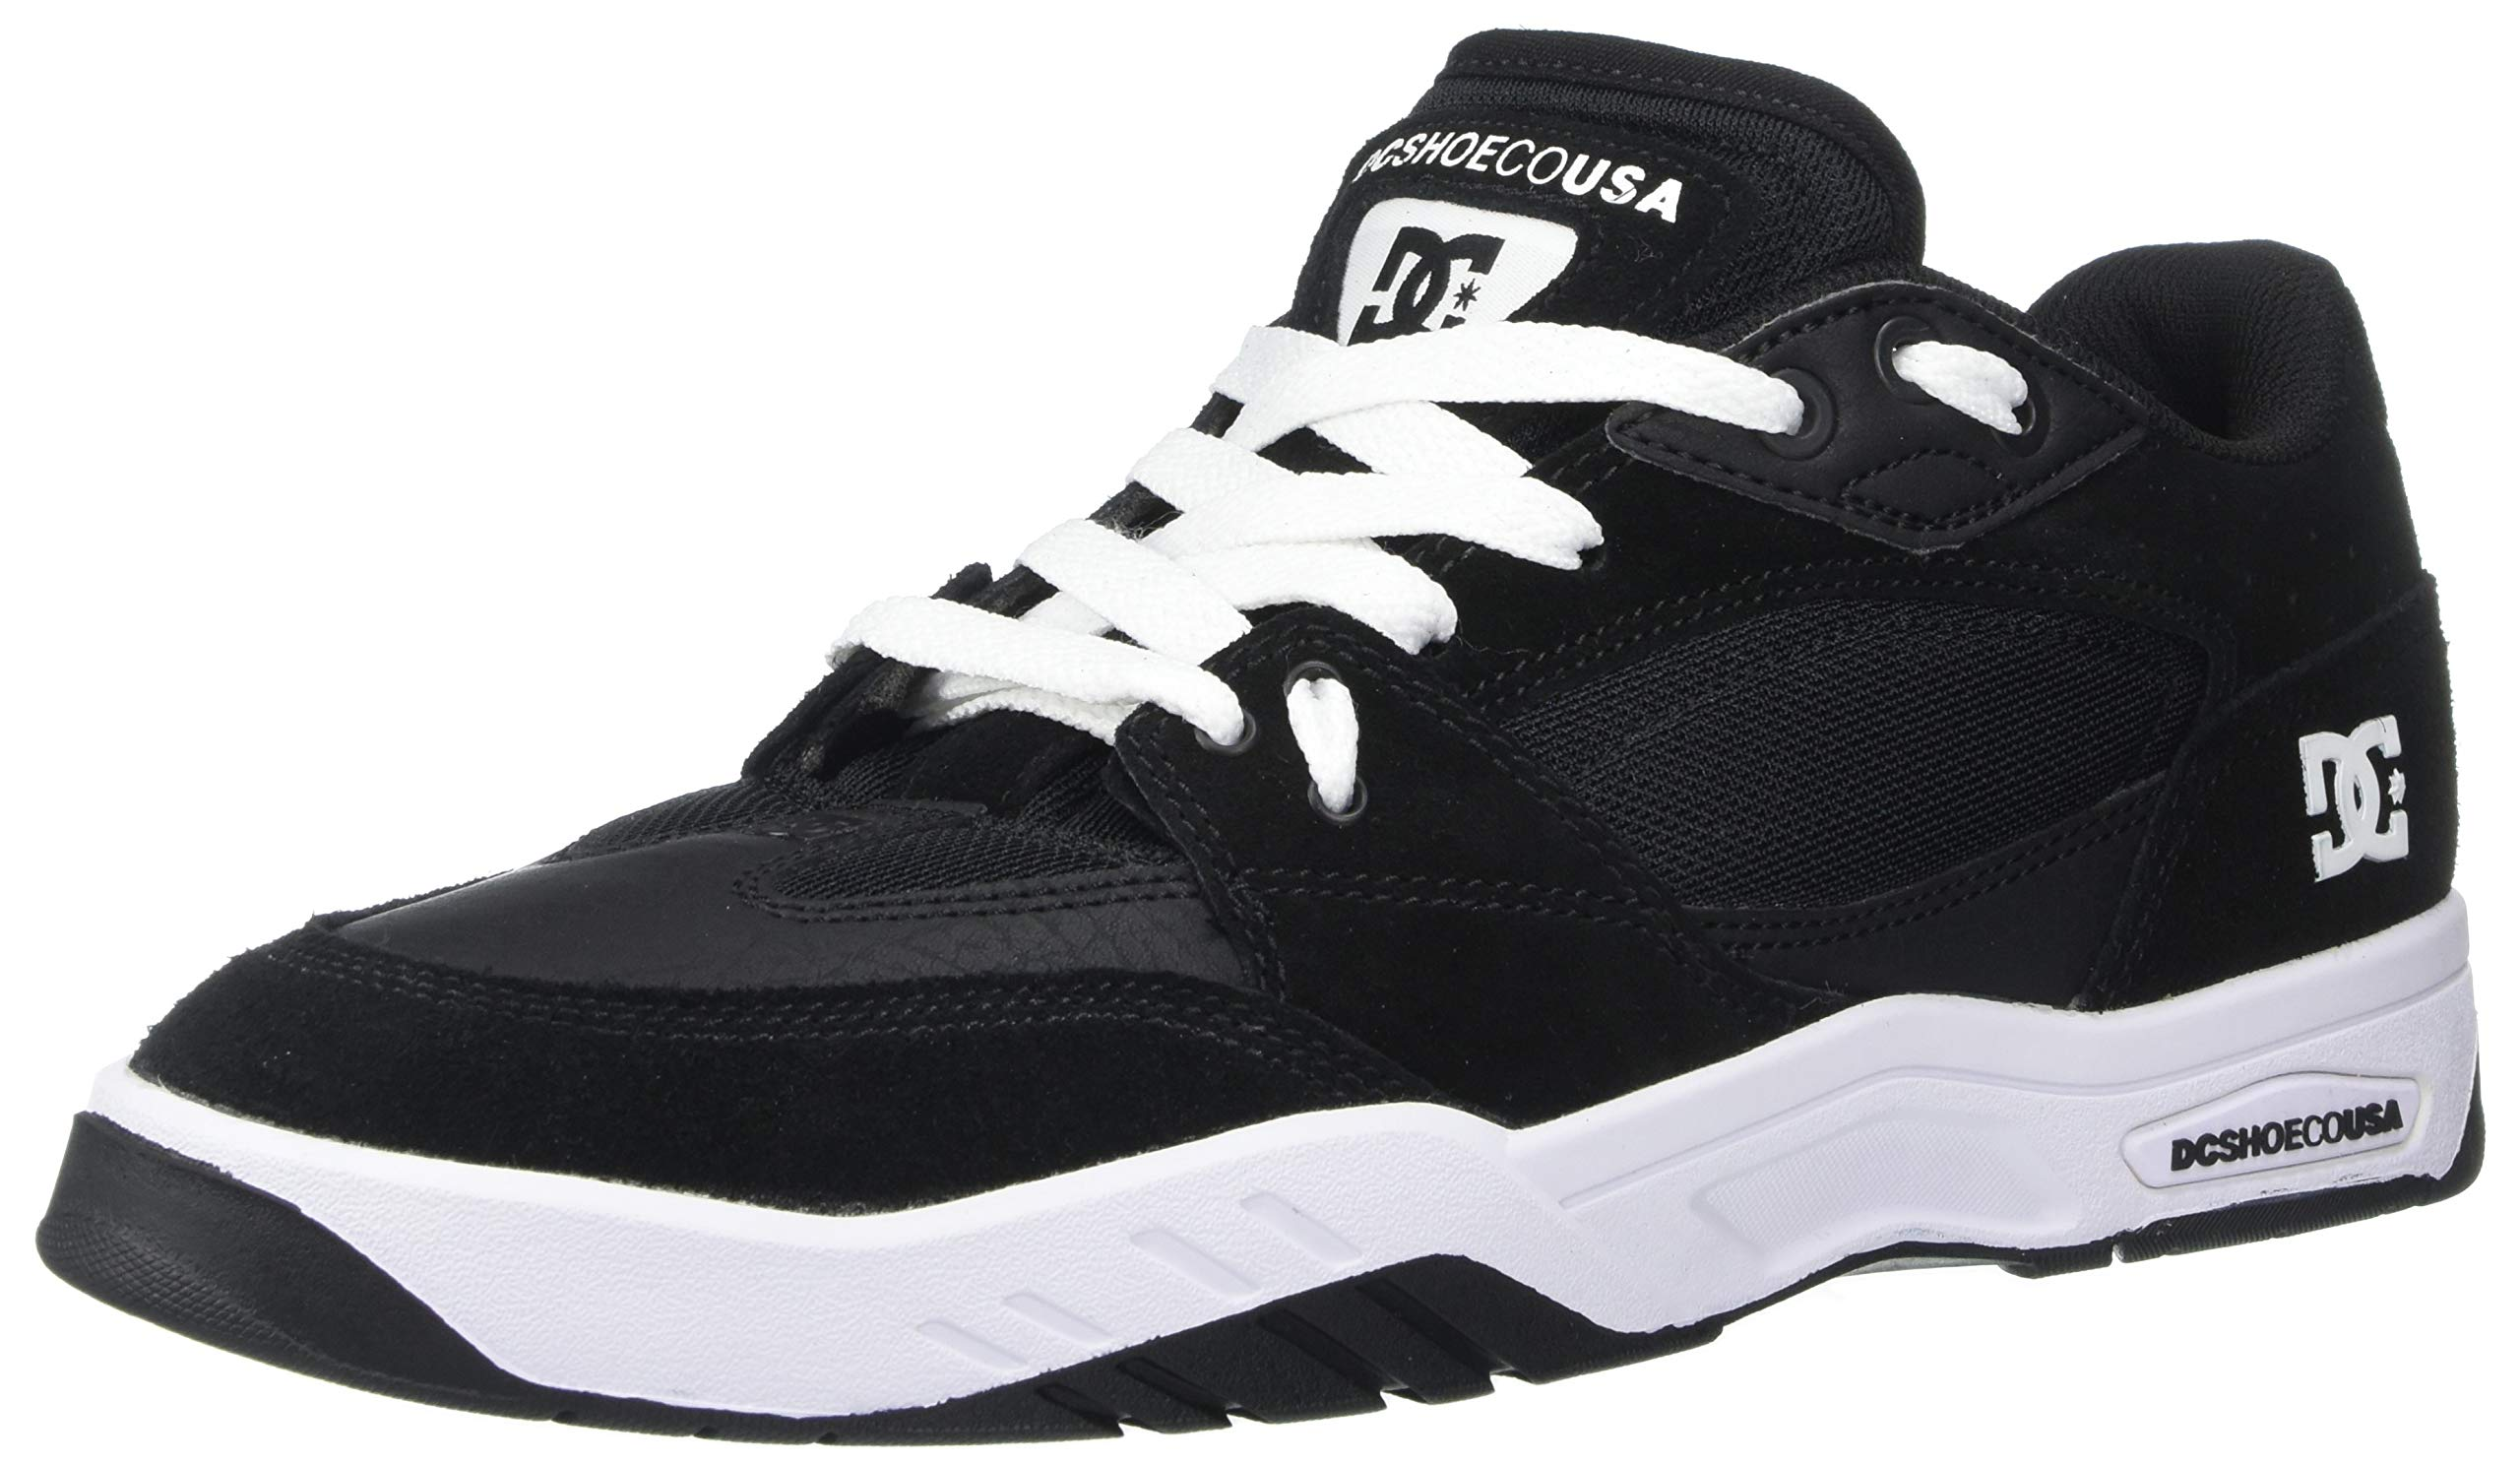 DC Men's MASWELL Skate Shoe, Black/White, 7.5 M US by DC